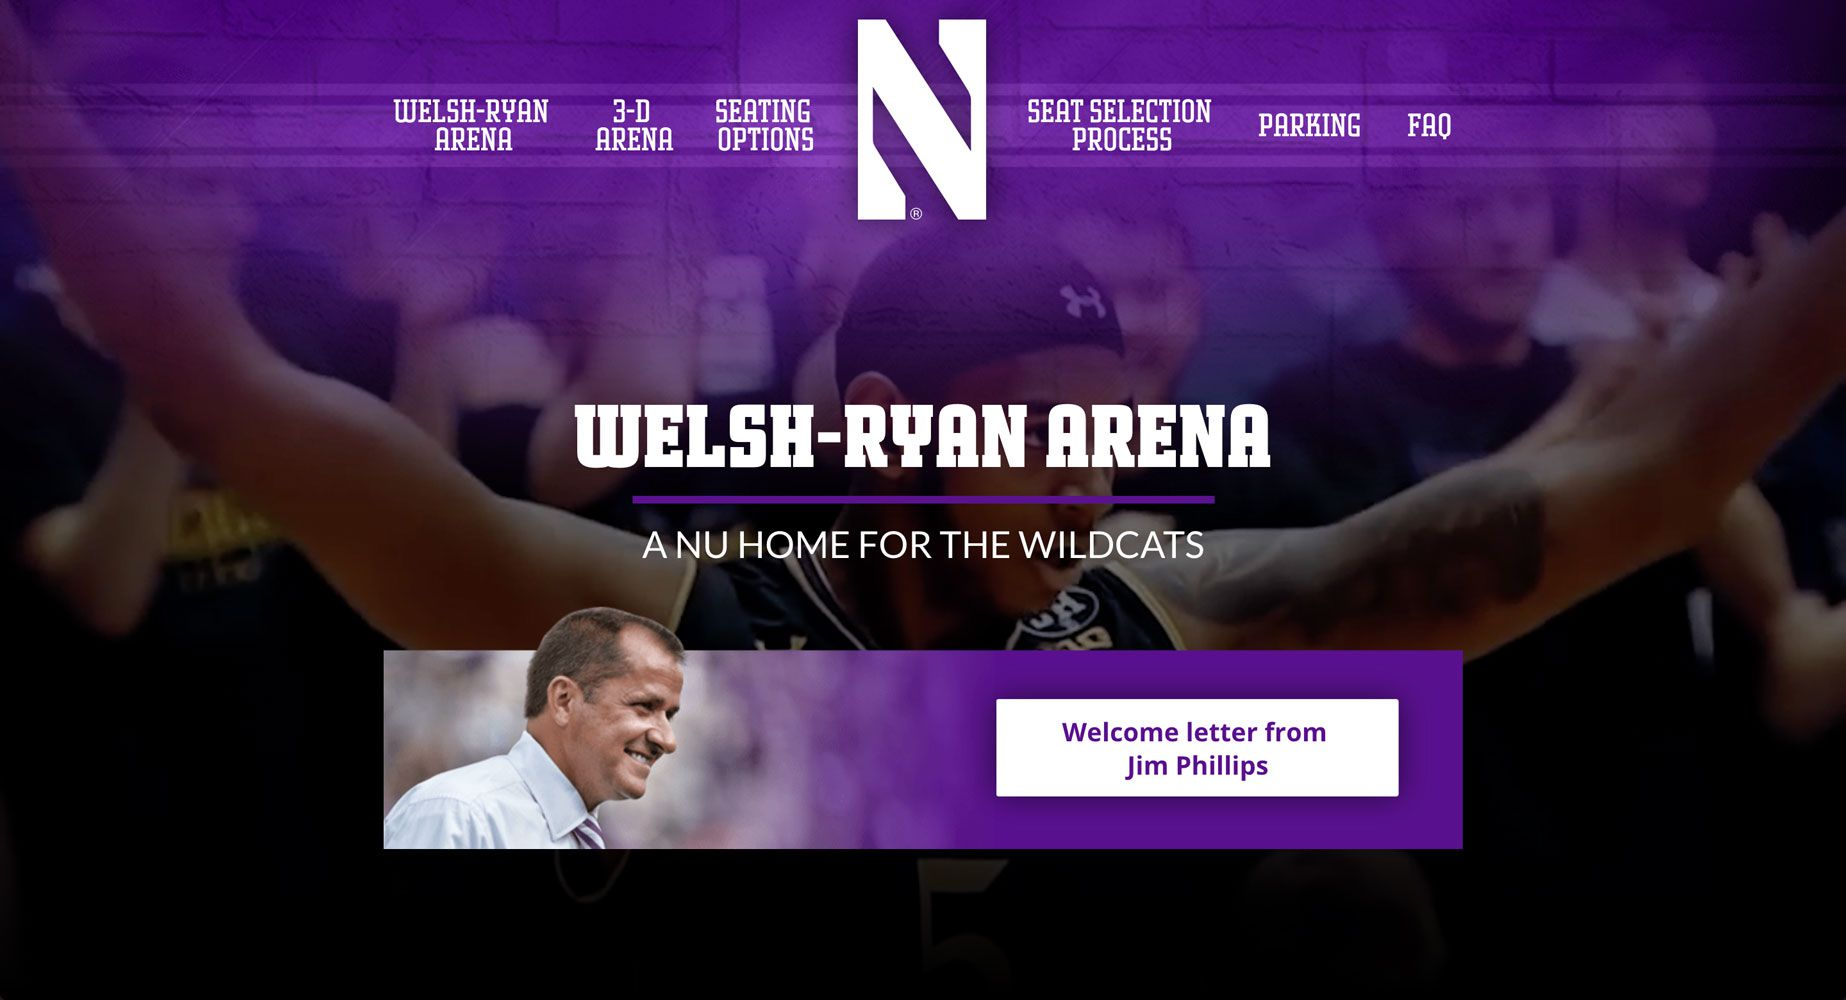 Join the Cats Welsh-Ryan Arena Website  | <a href='http://jointhecats.com/' target='_blank'>Visit Site <i class='nc-icon-glyph arrows-1_share-91'></i></a><br><span>Northwestern University</span>